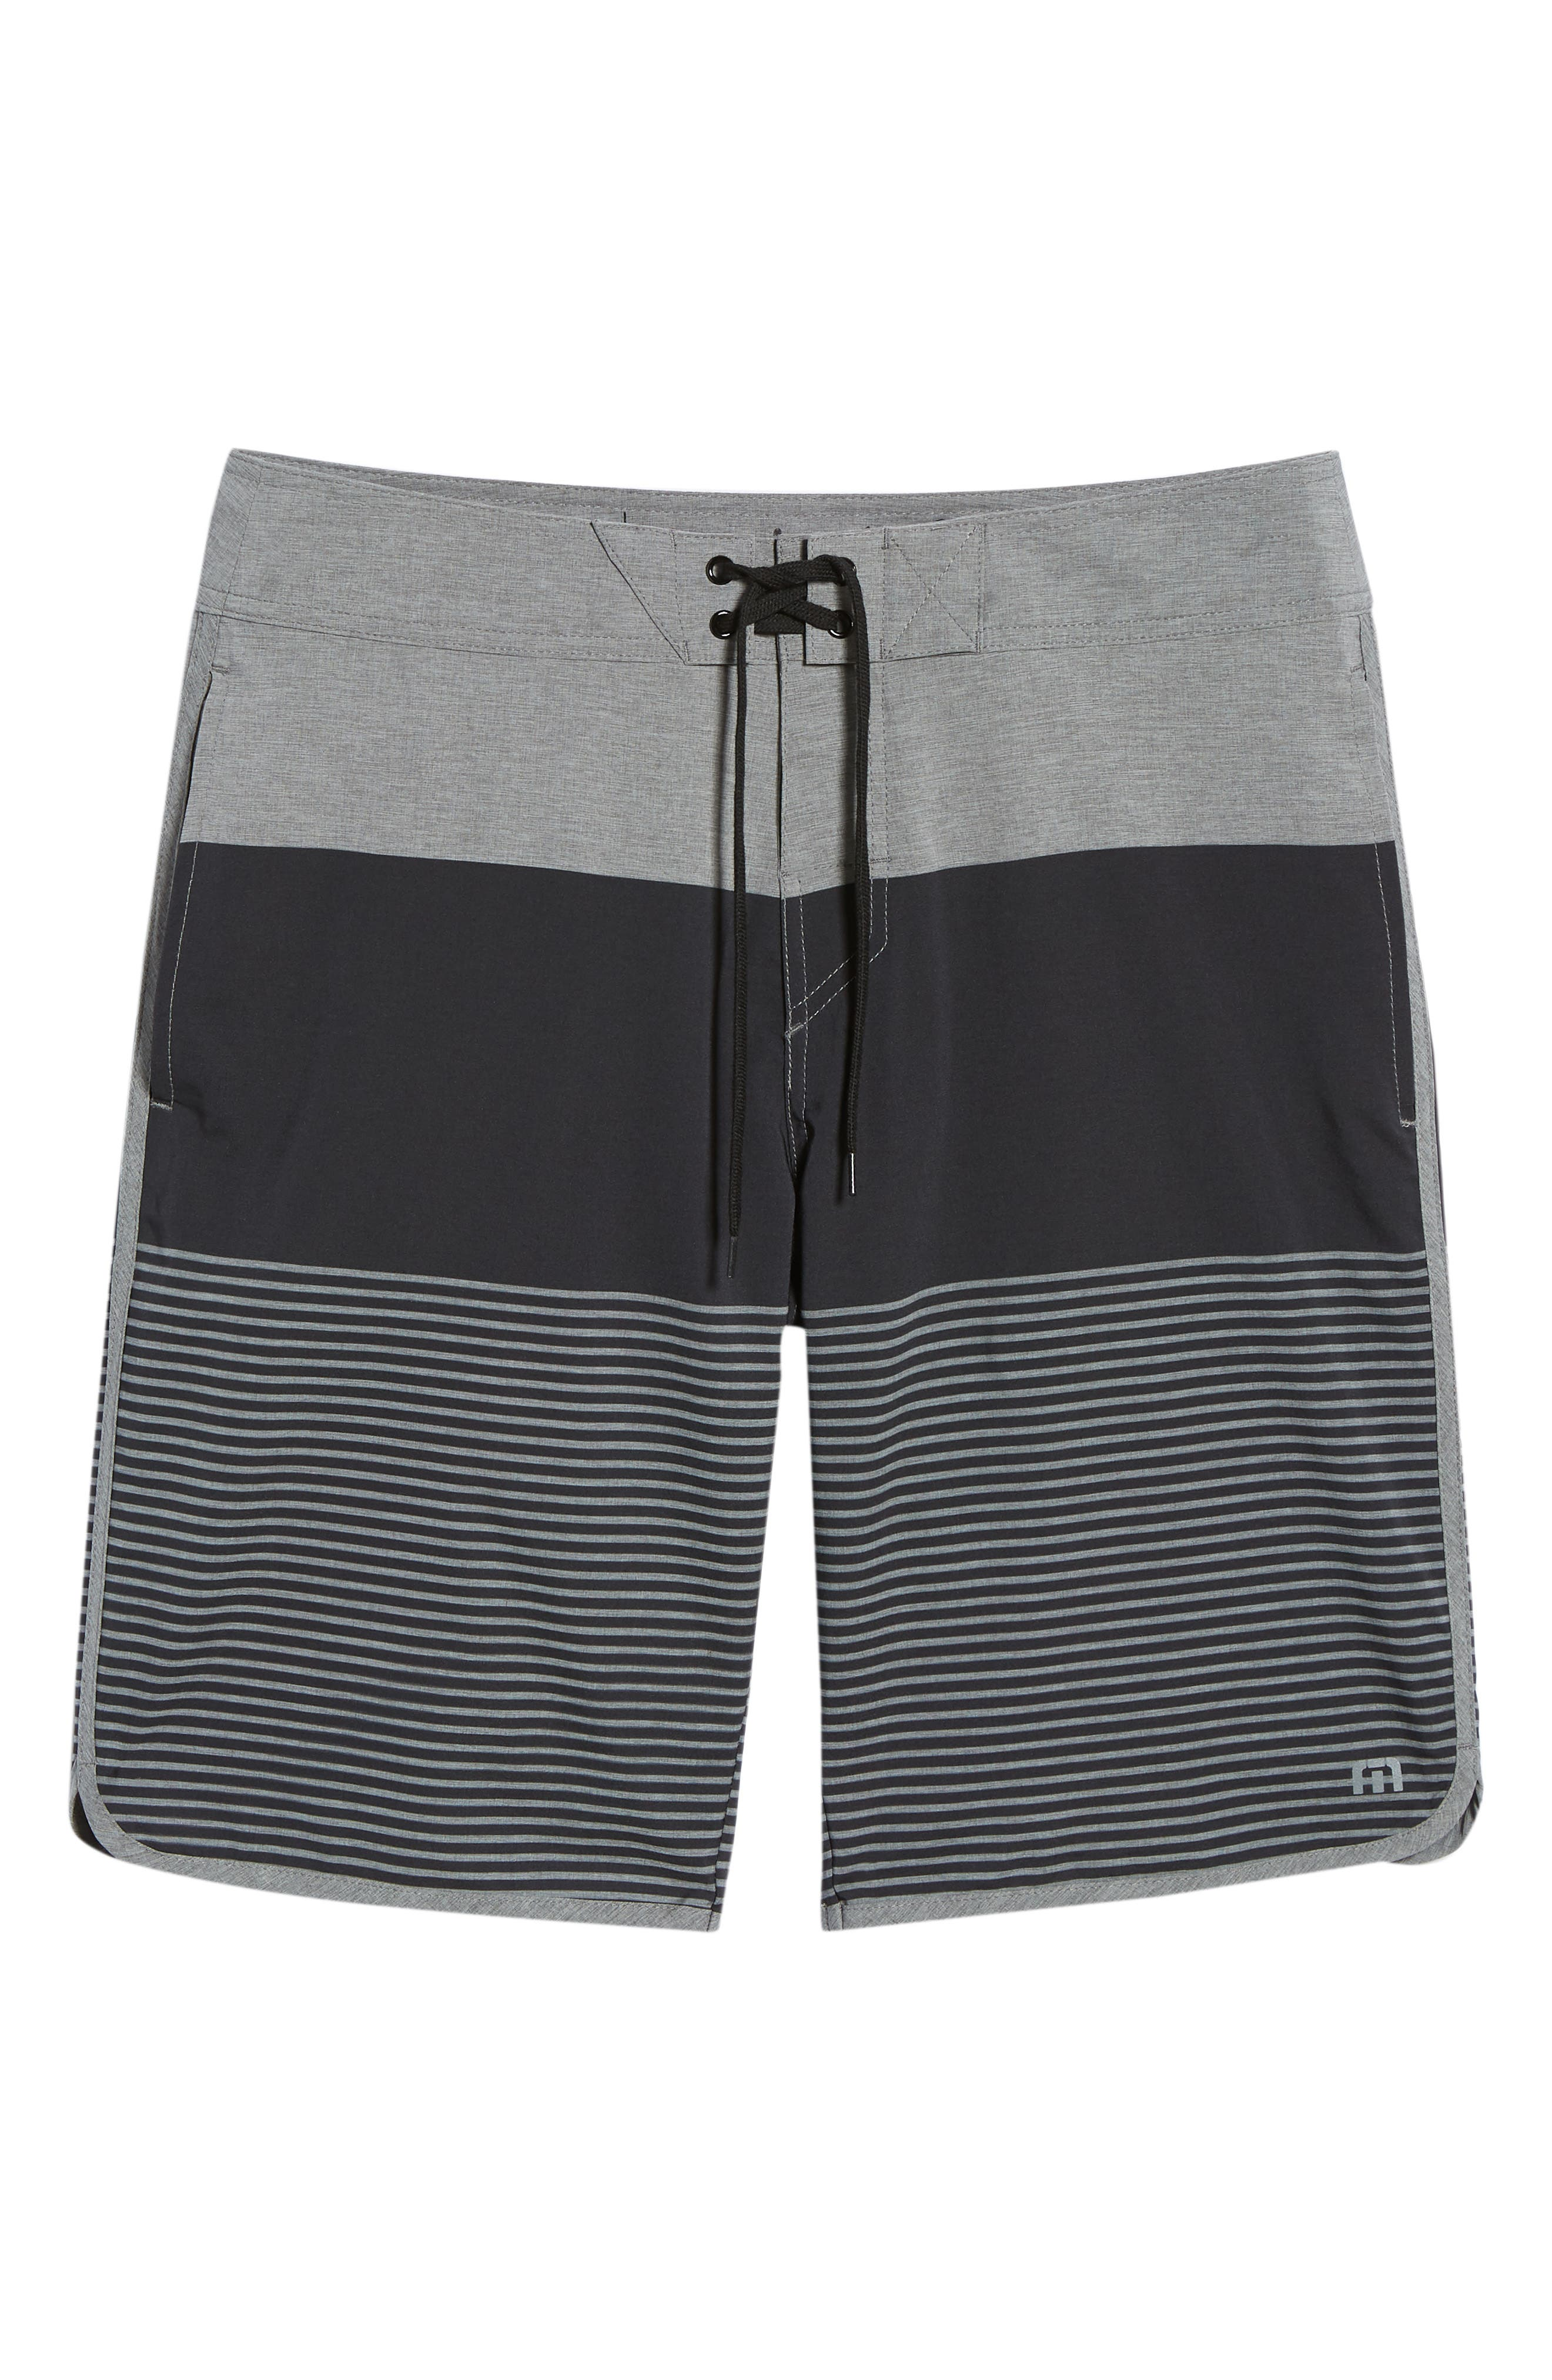 Claim It Regular Fit Board Shorts,                             Alternate thumbnail 6, color,                             001